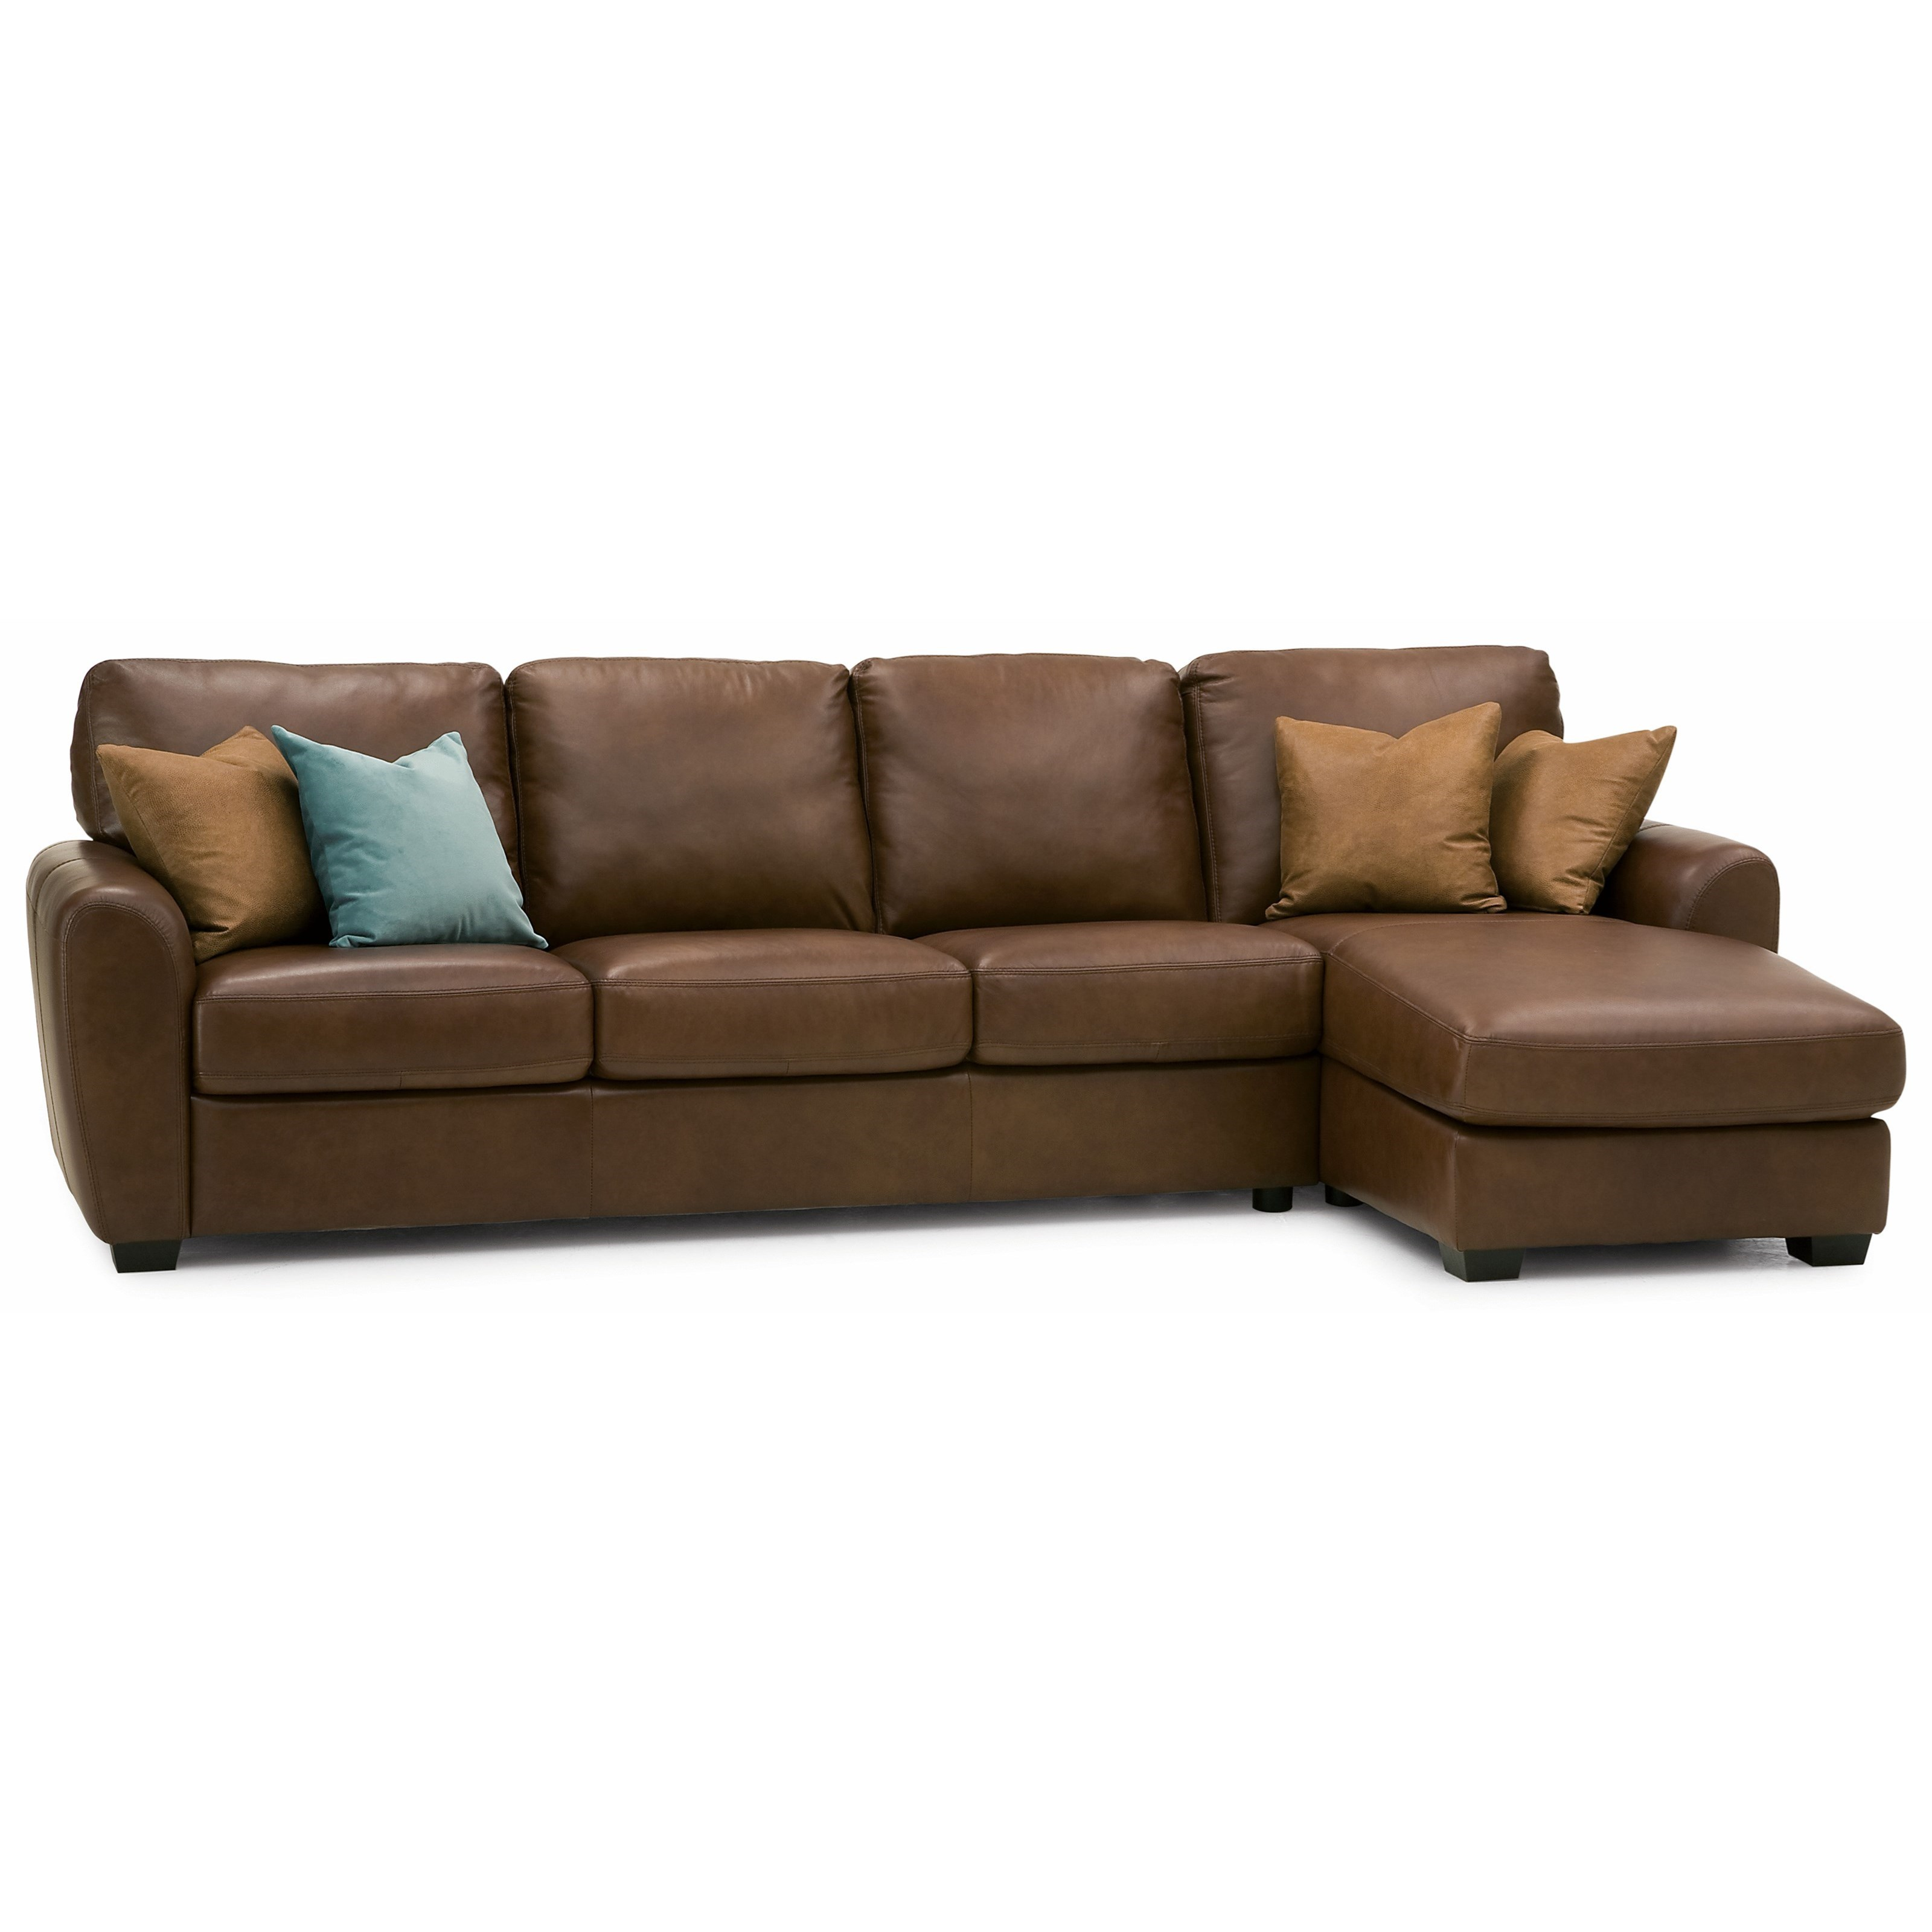 Palliser Connecticut Contemporary Sectional Sofa With RHF